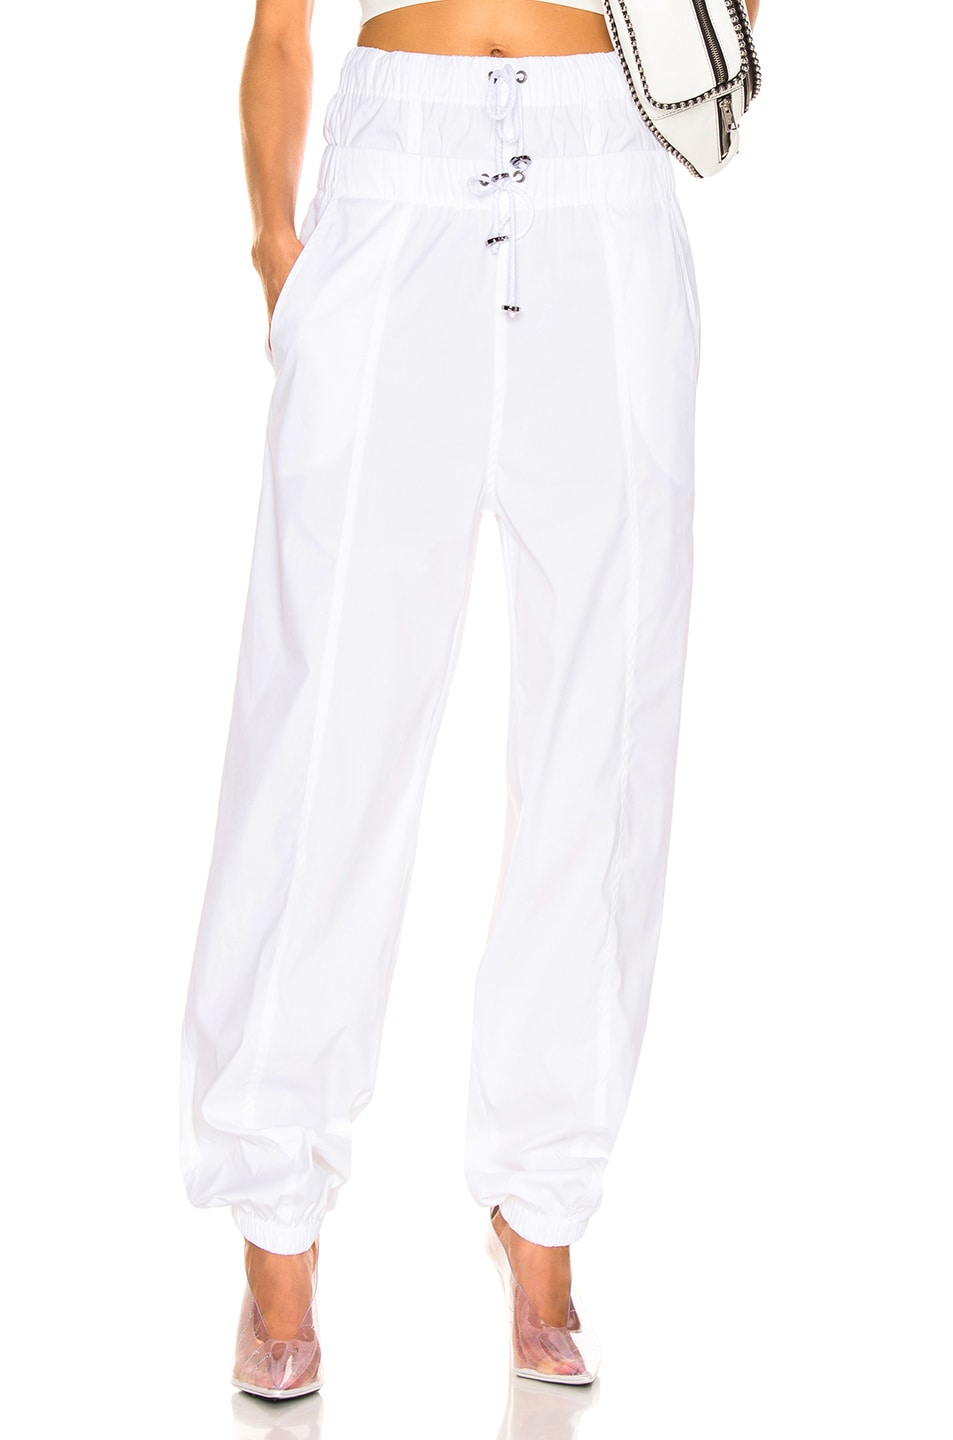 Image 1 of TRE by Natalie Ratabesi Flo Track Pant in White